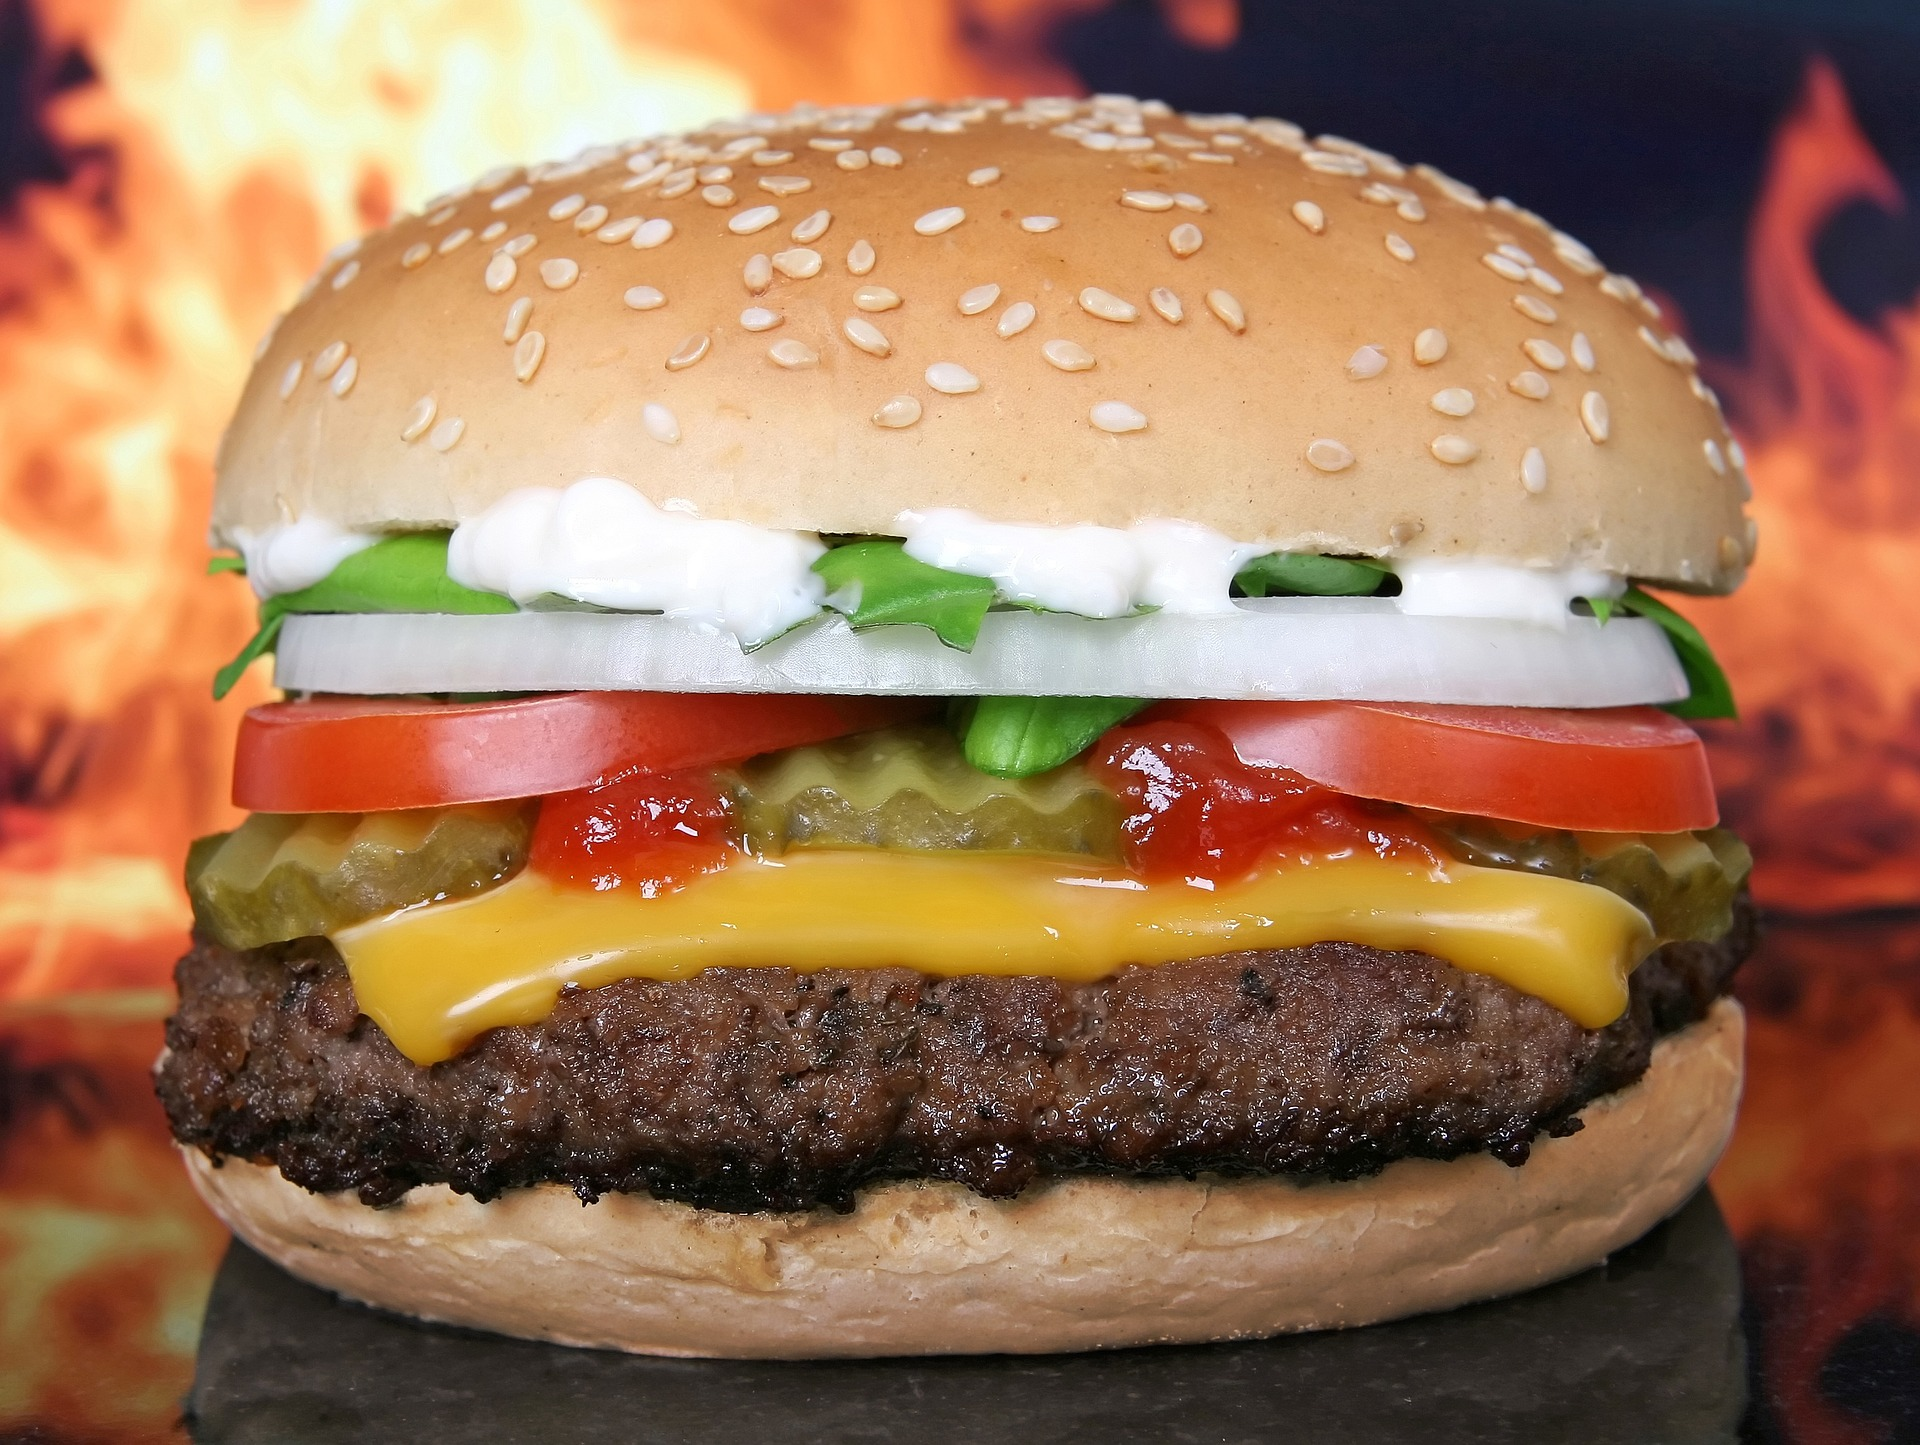 Hamburger in front of flames, McDonald's, KFC, Burger King, Domino's are being asked by investors to curb their carbon emissions and water usage across their supply chains